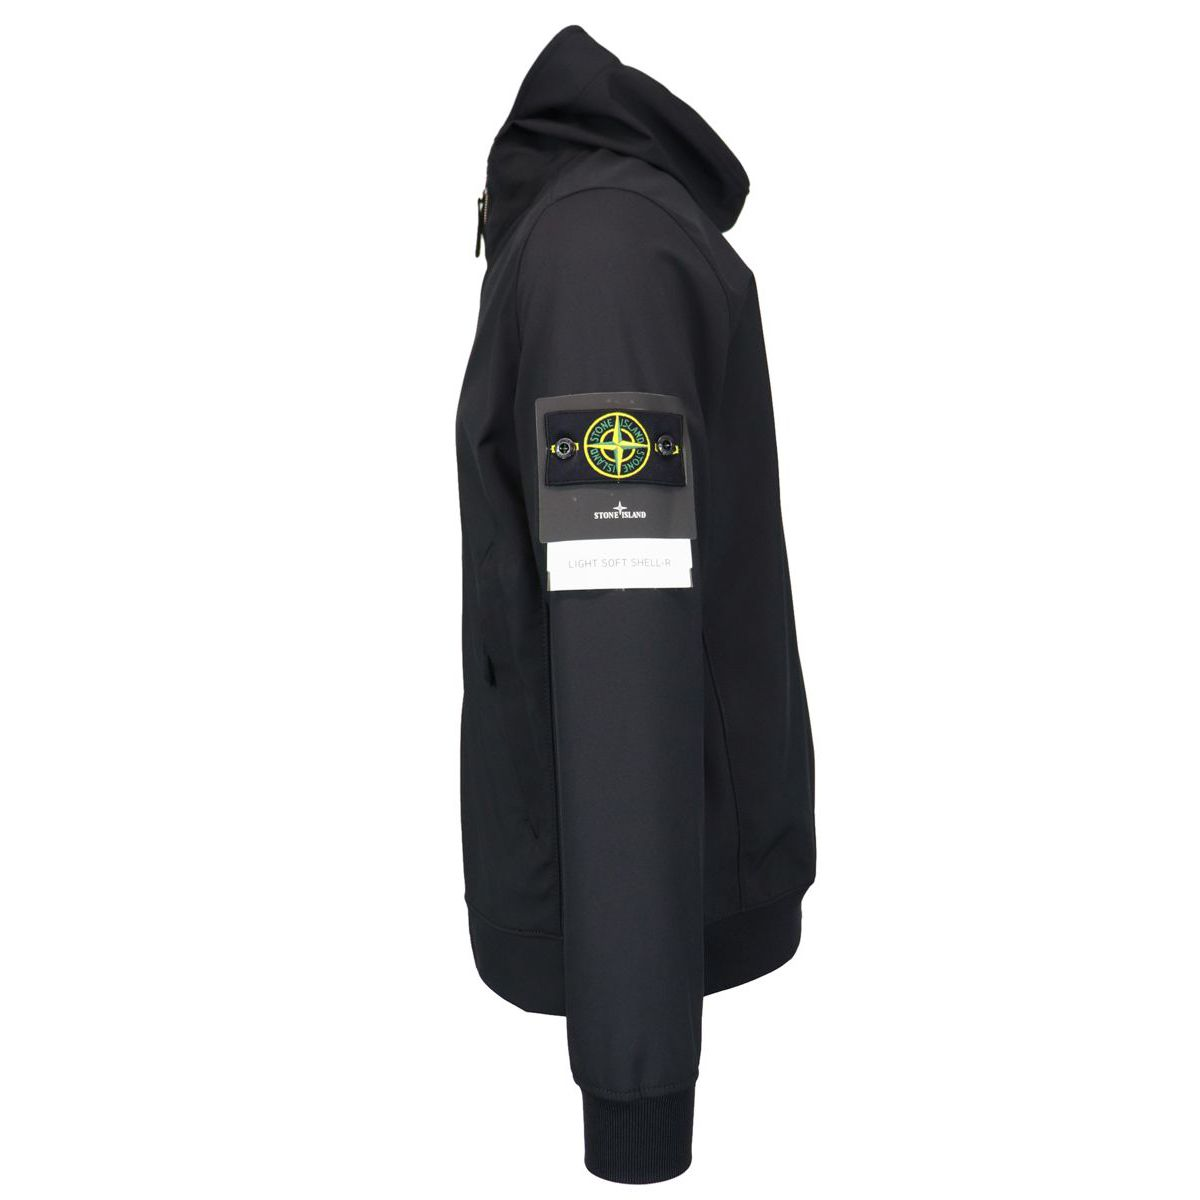 Light Soft Shell-R jacket Black Stone Island